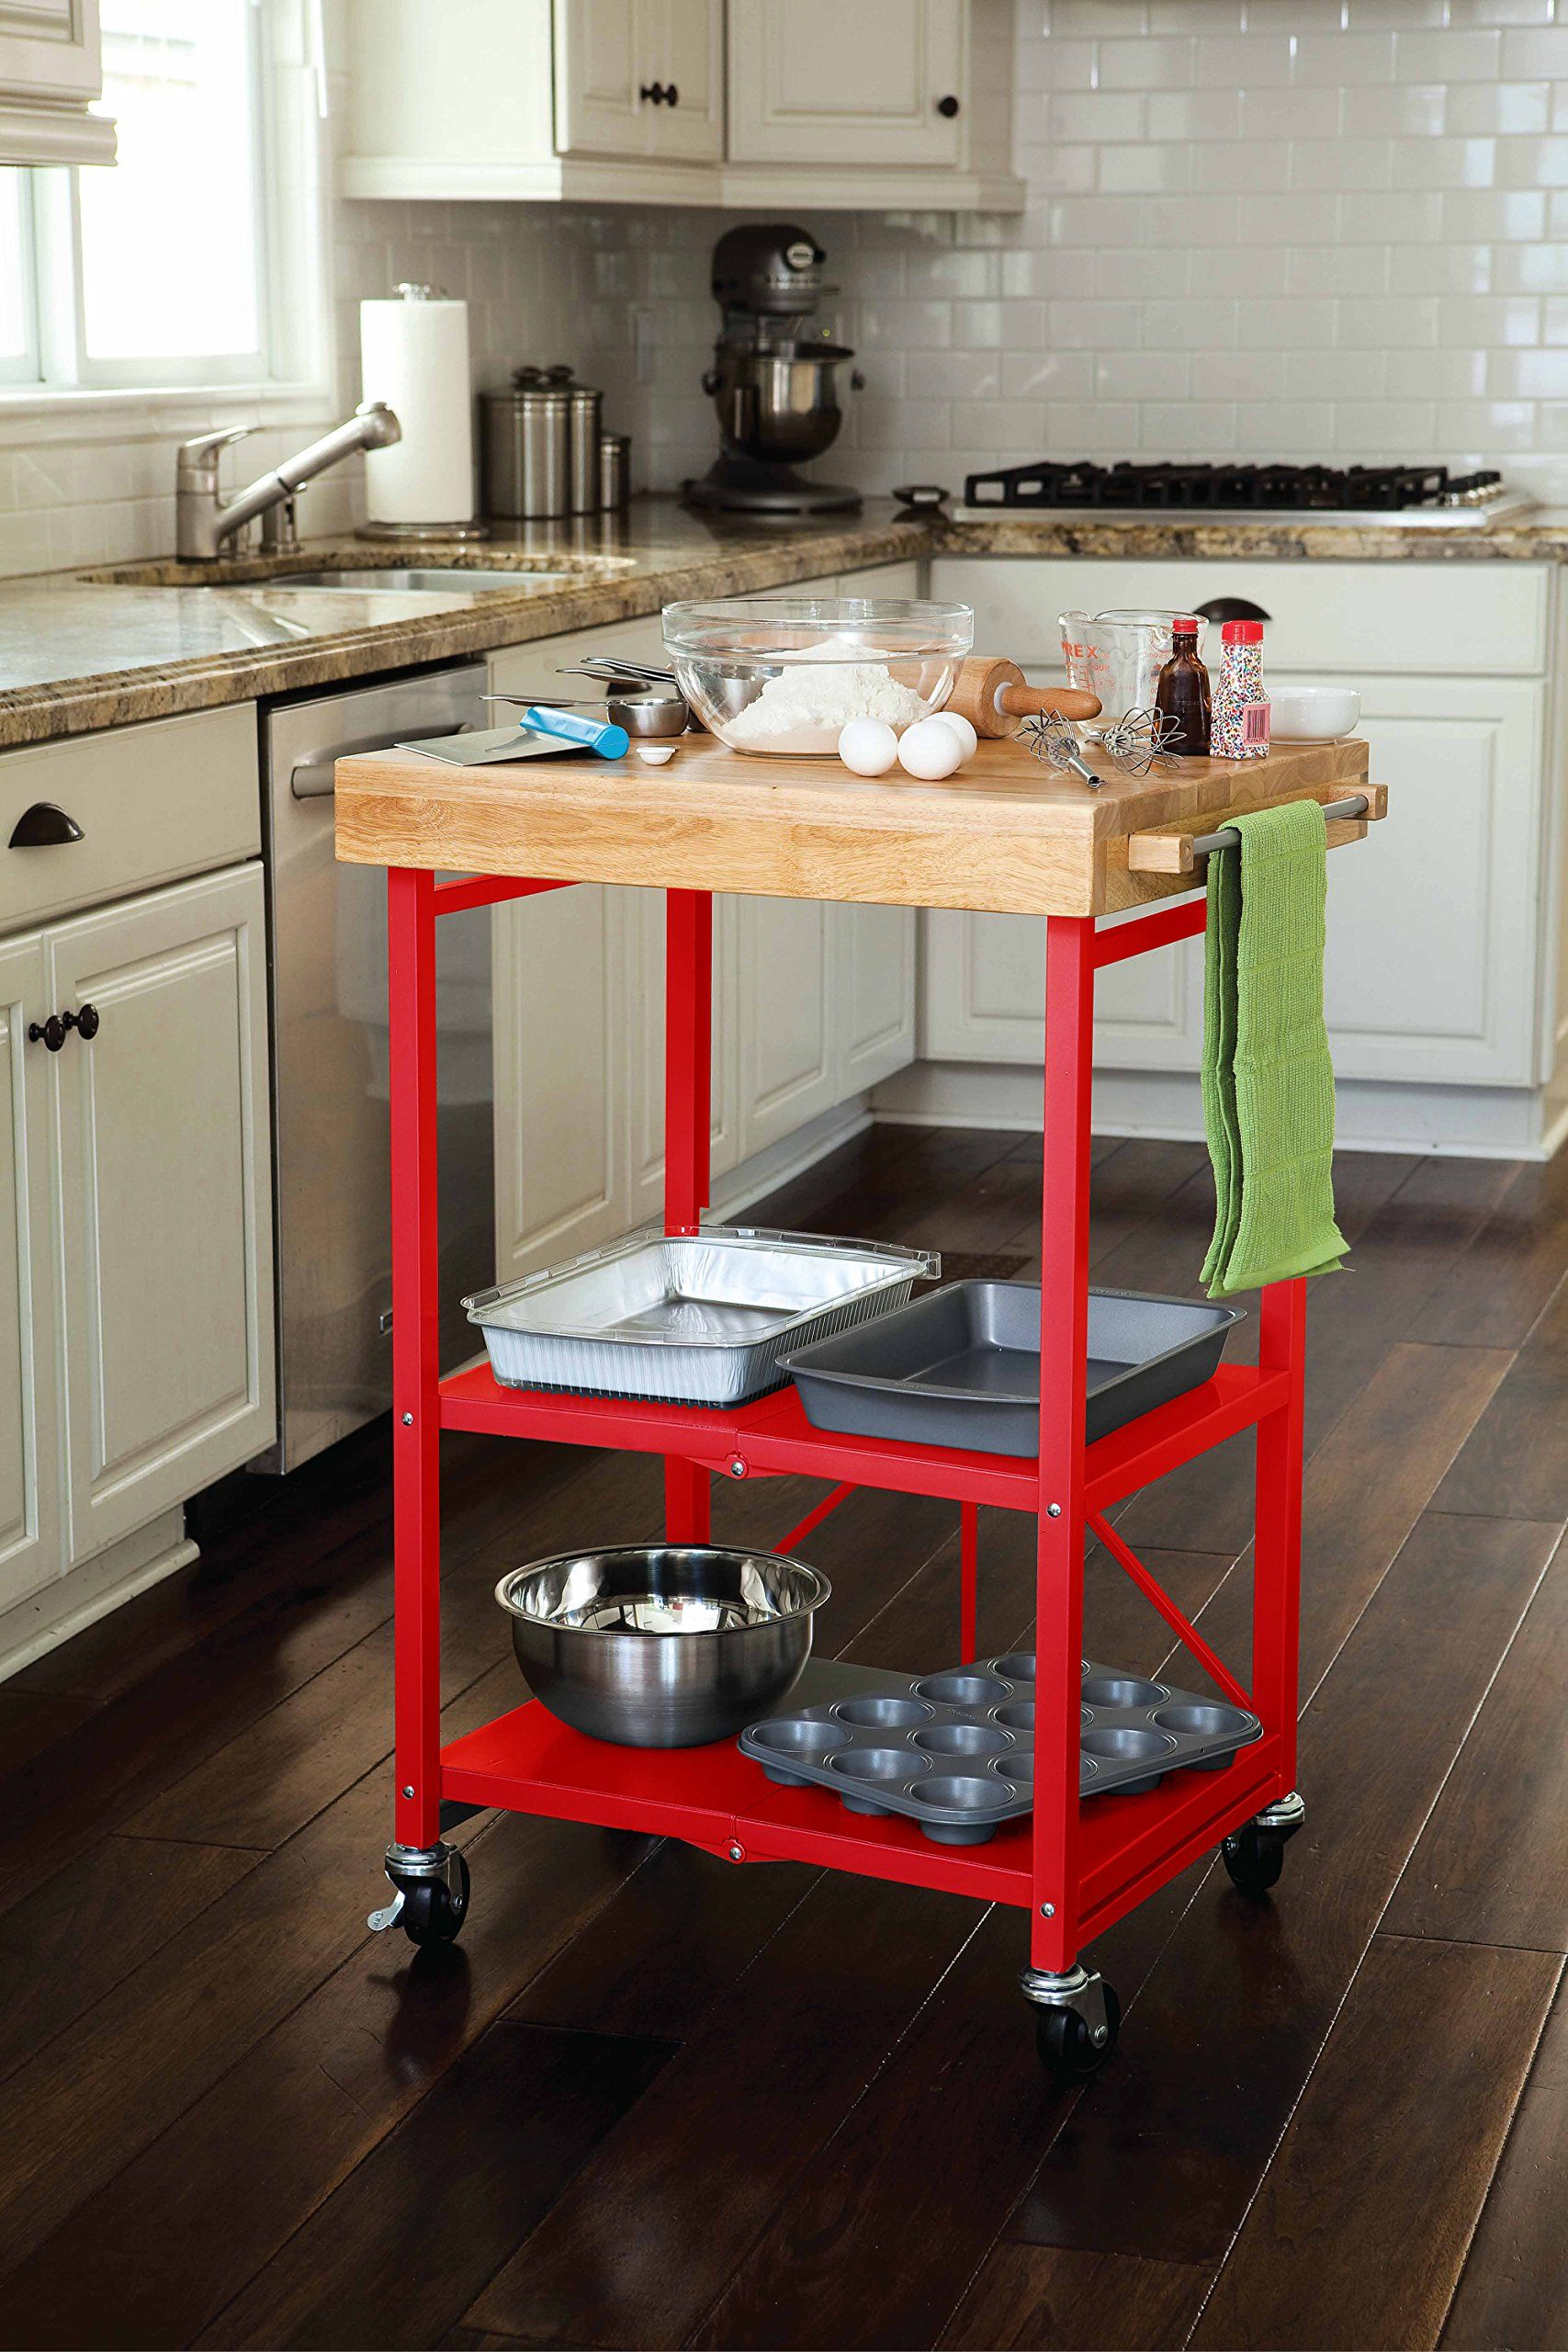 135 Origami Folding Island Kitchen Cart Red Furniture Decor